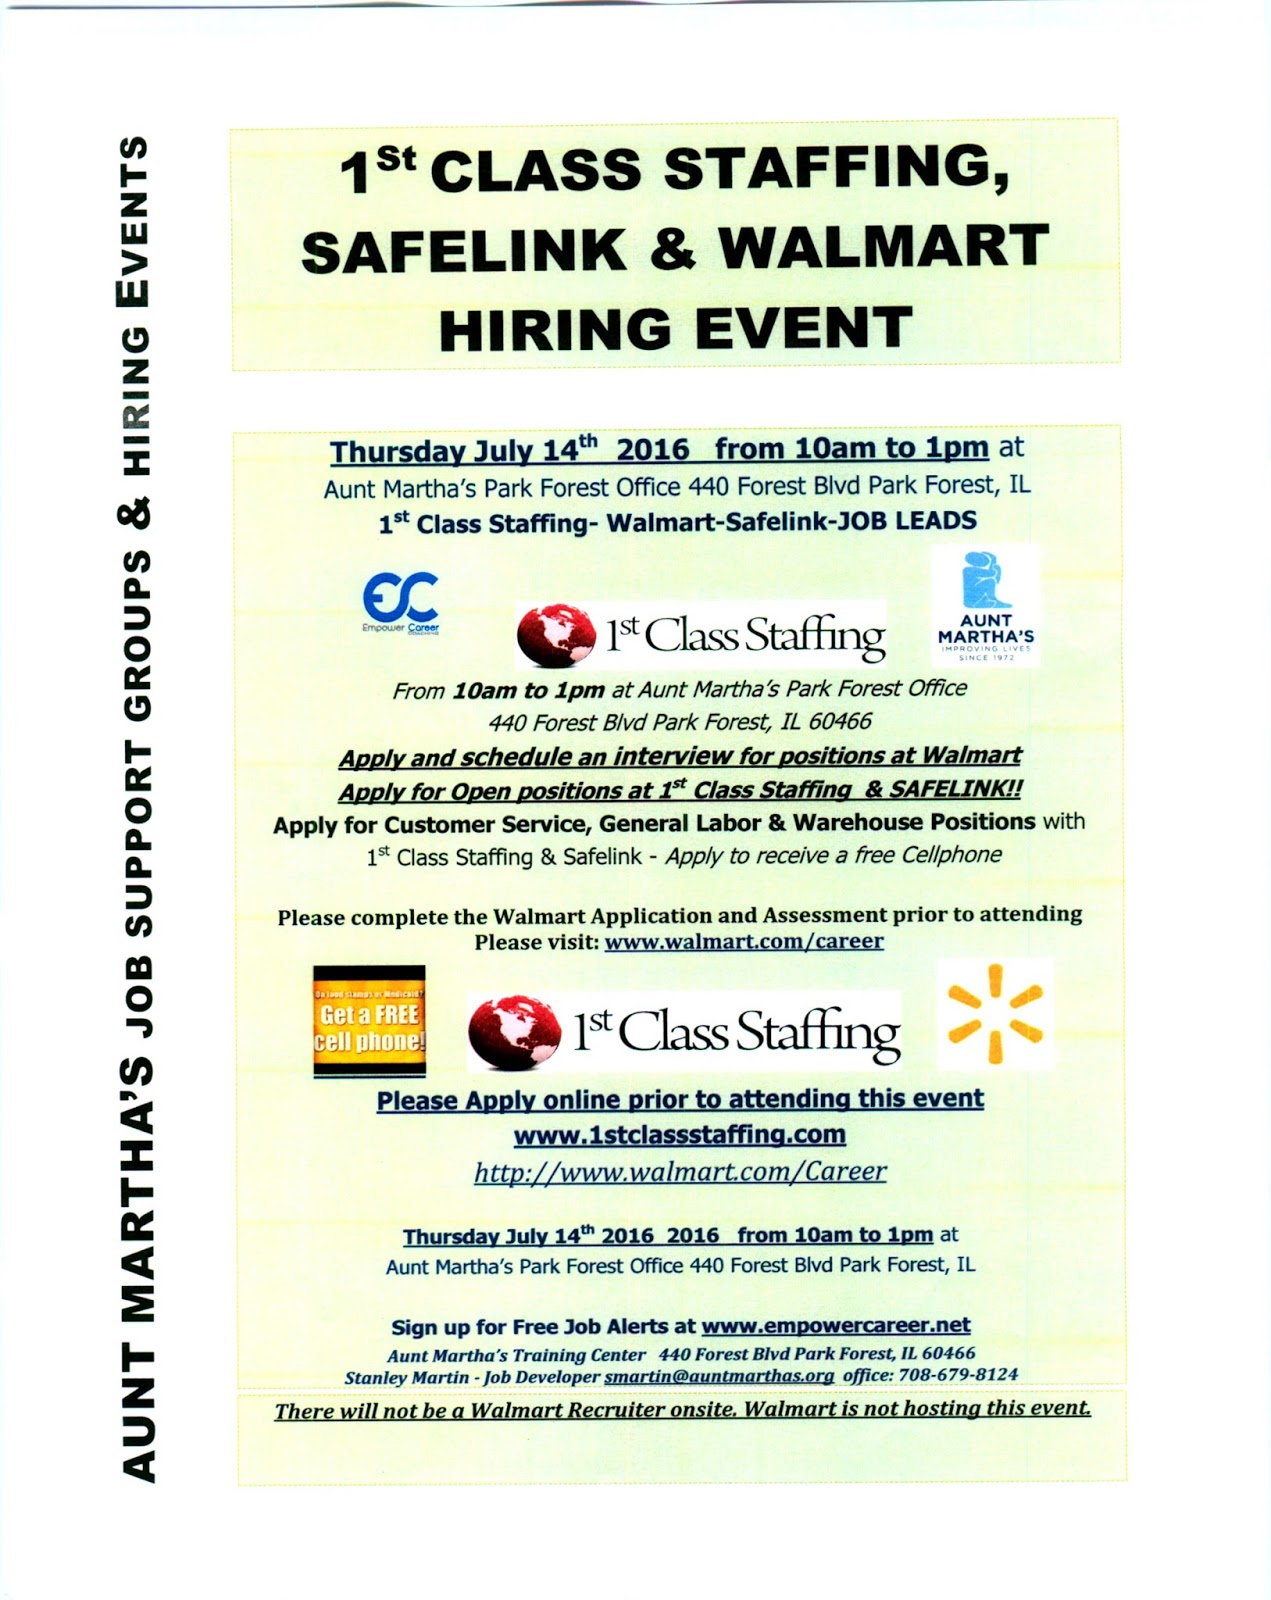 stan martin career blog  there will not be a walmart recruiter onsite walmart is not hosting this event